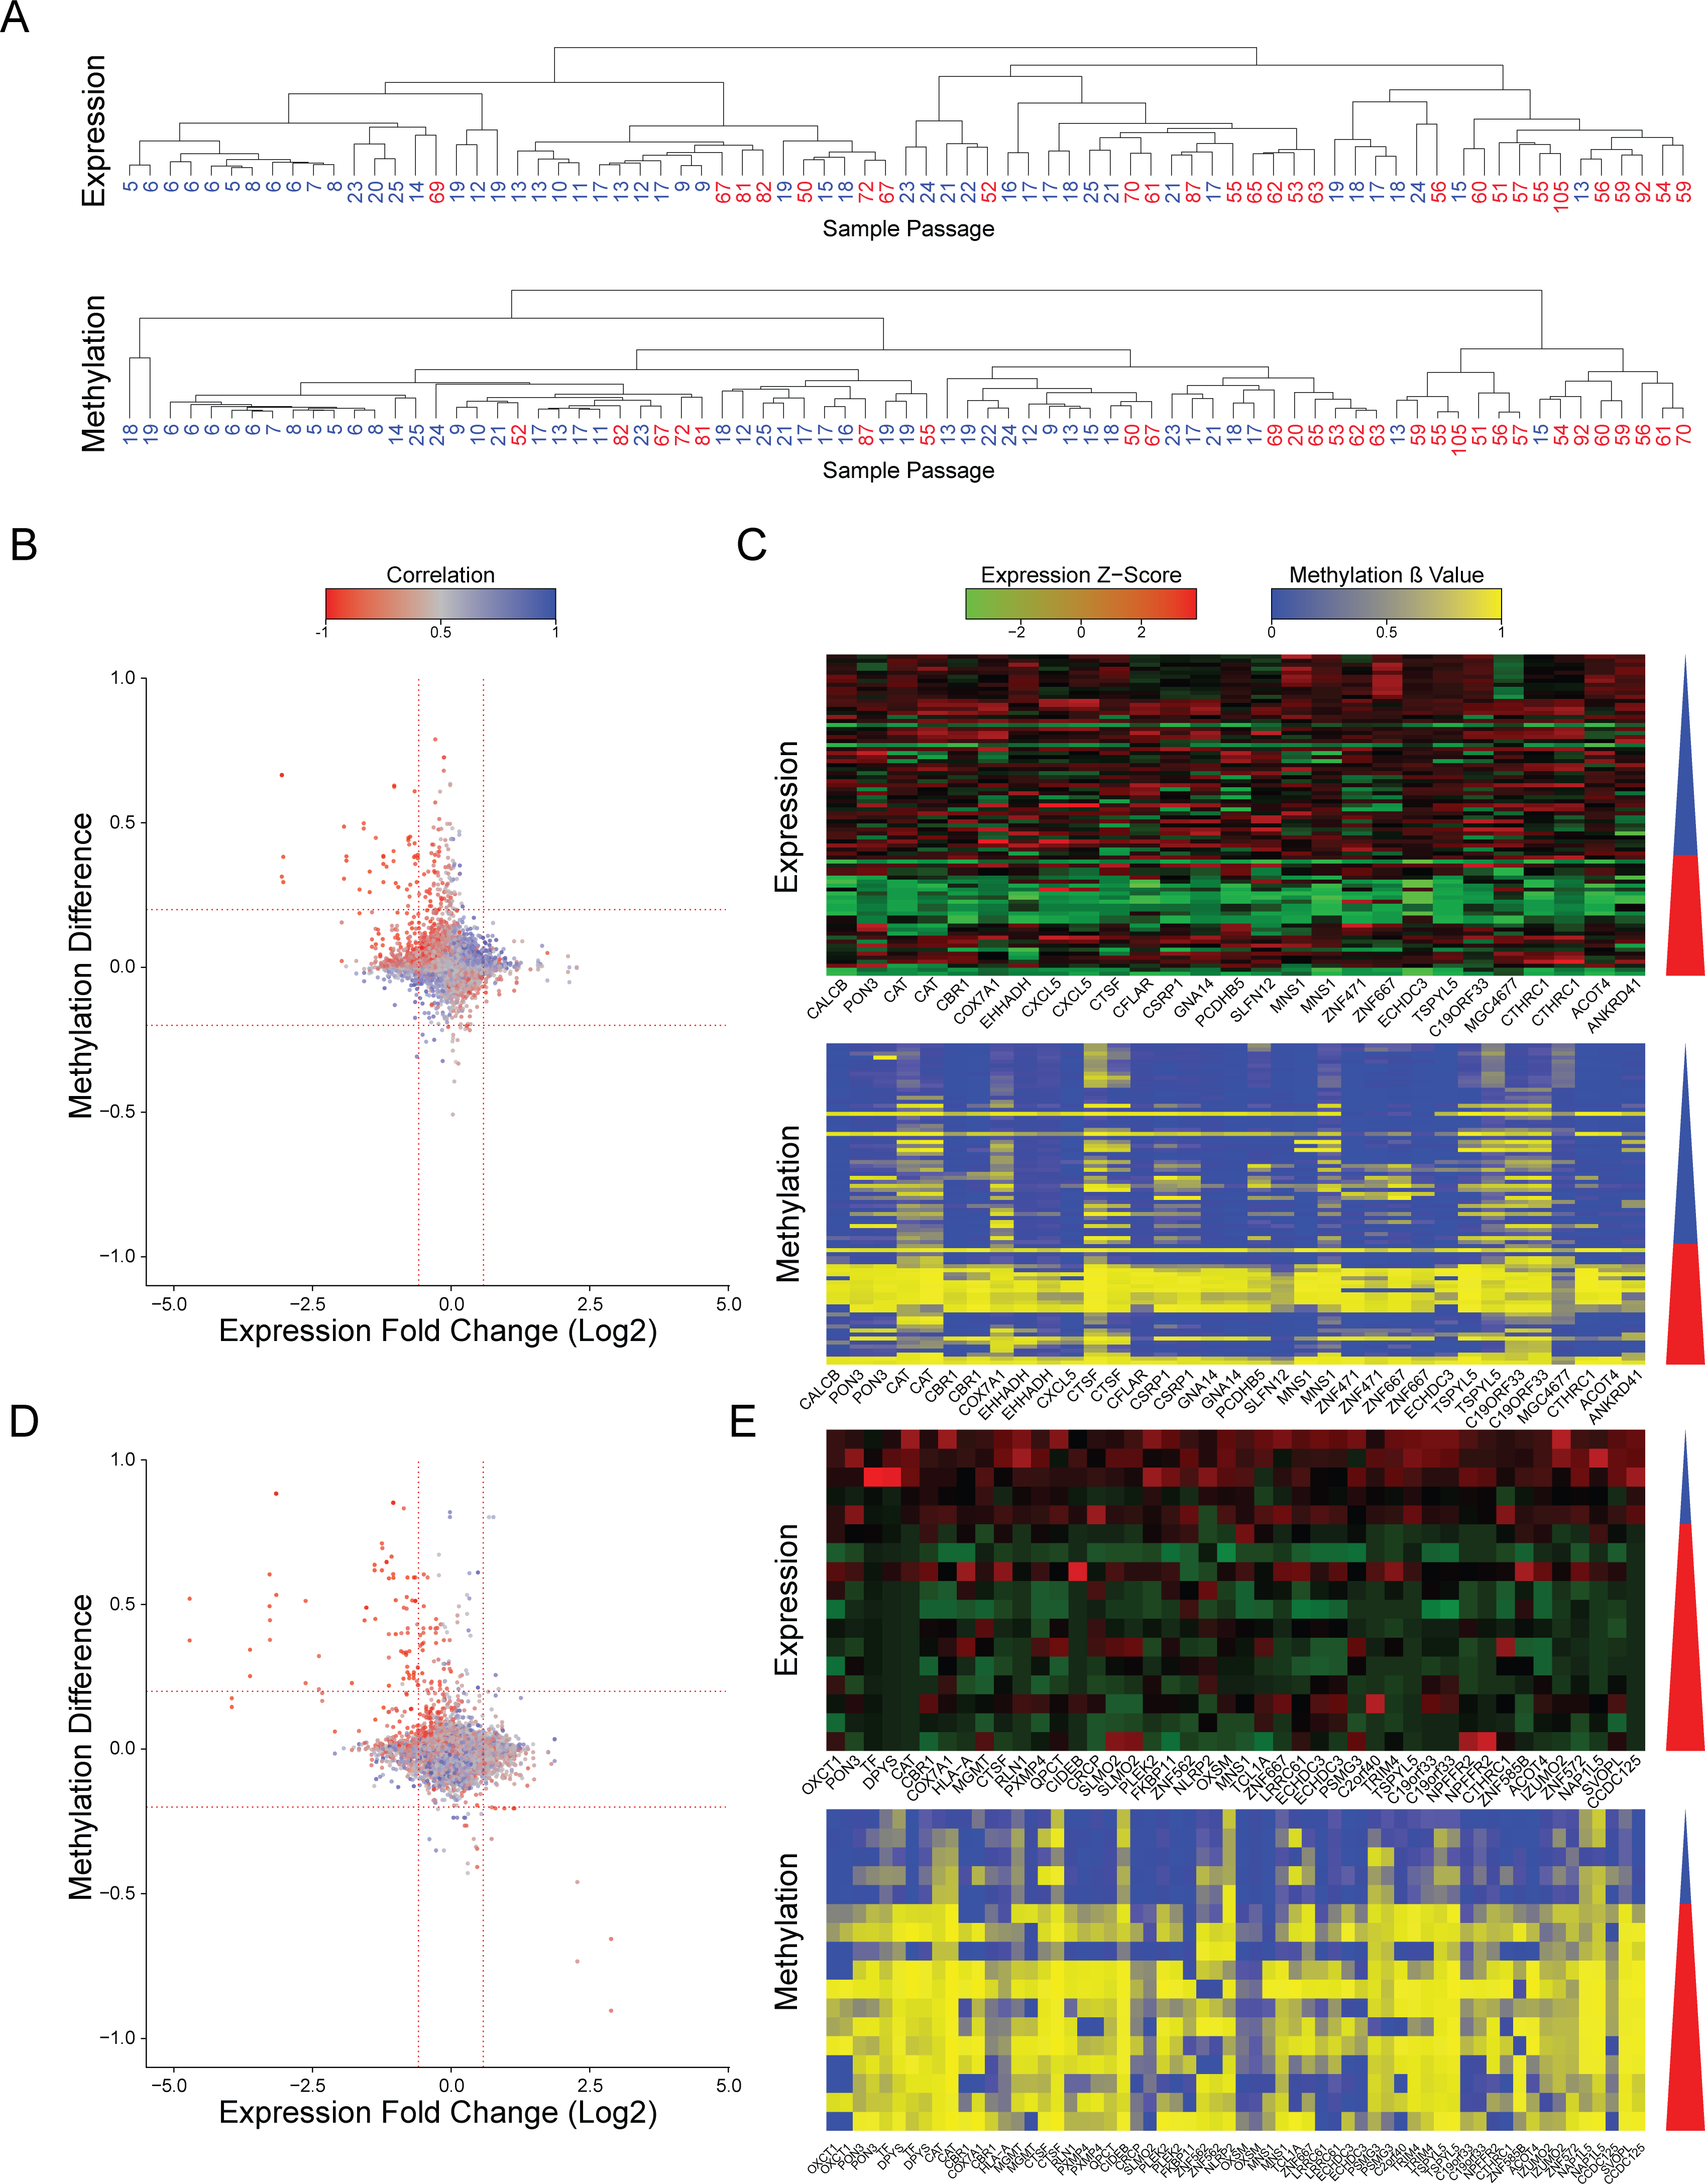 Changes in expression and methylation during prolonged culturing of hPSCs.